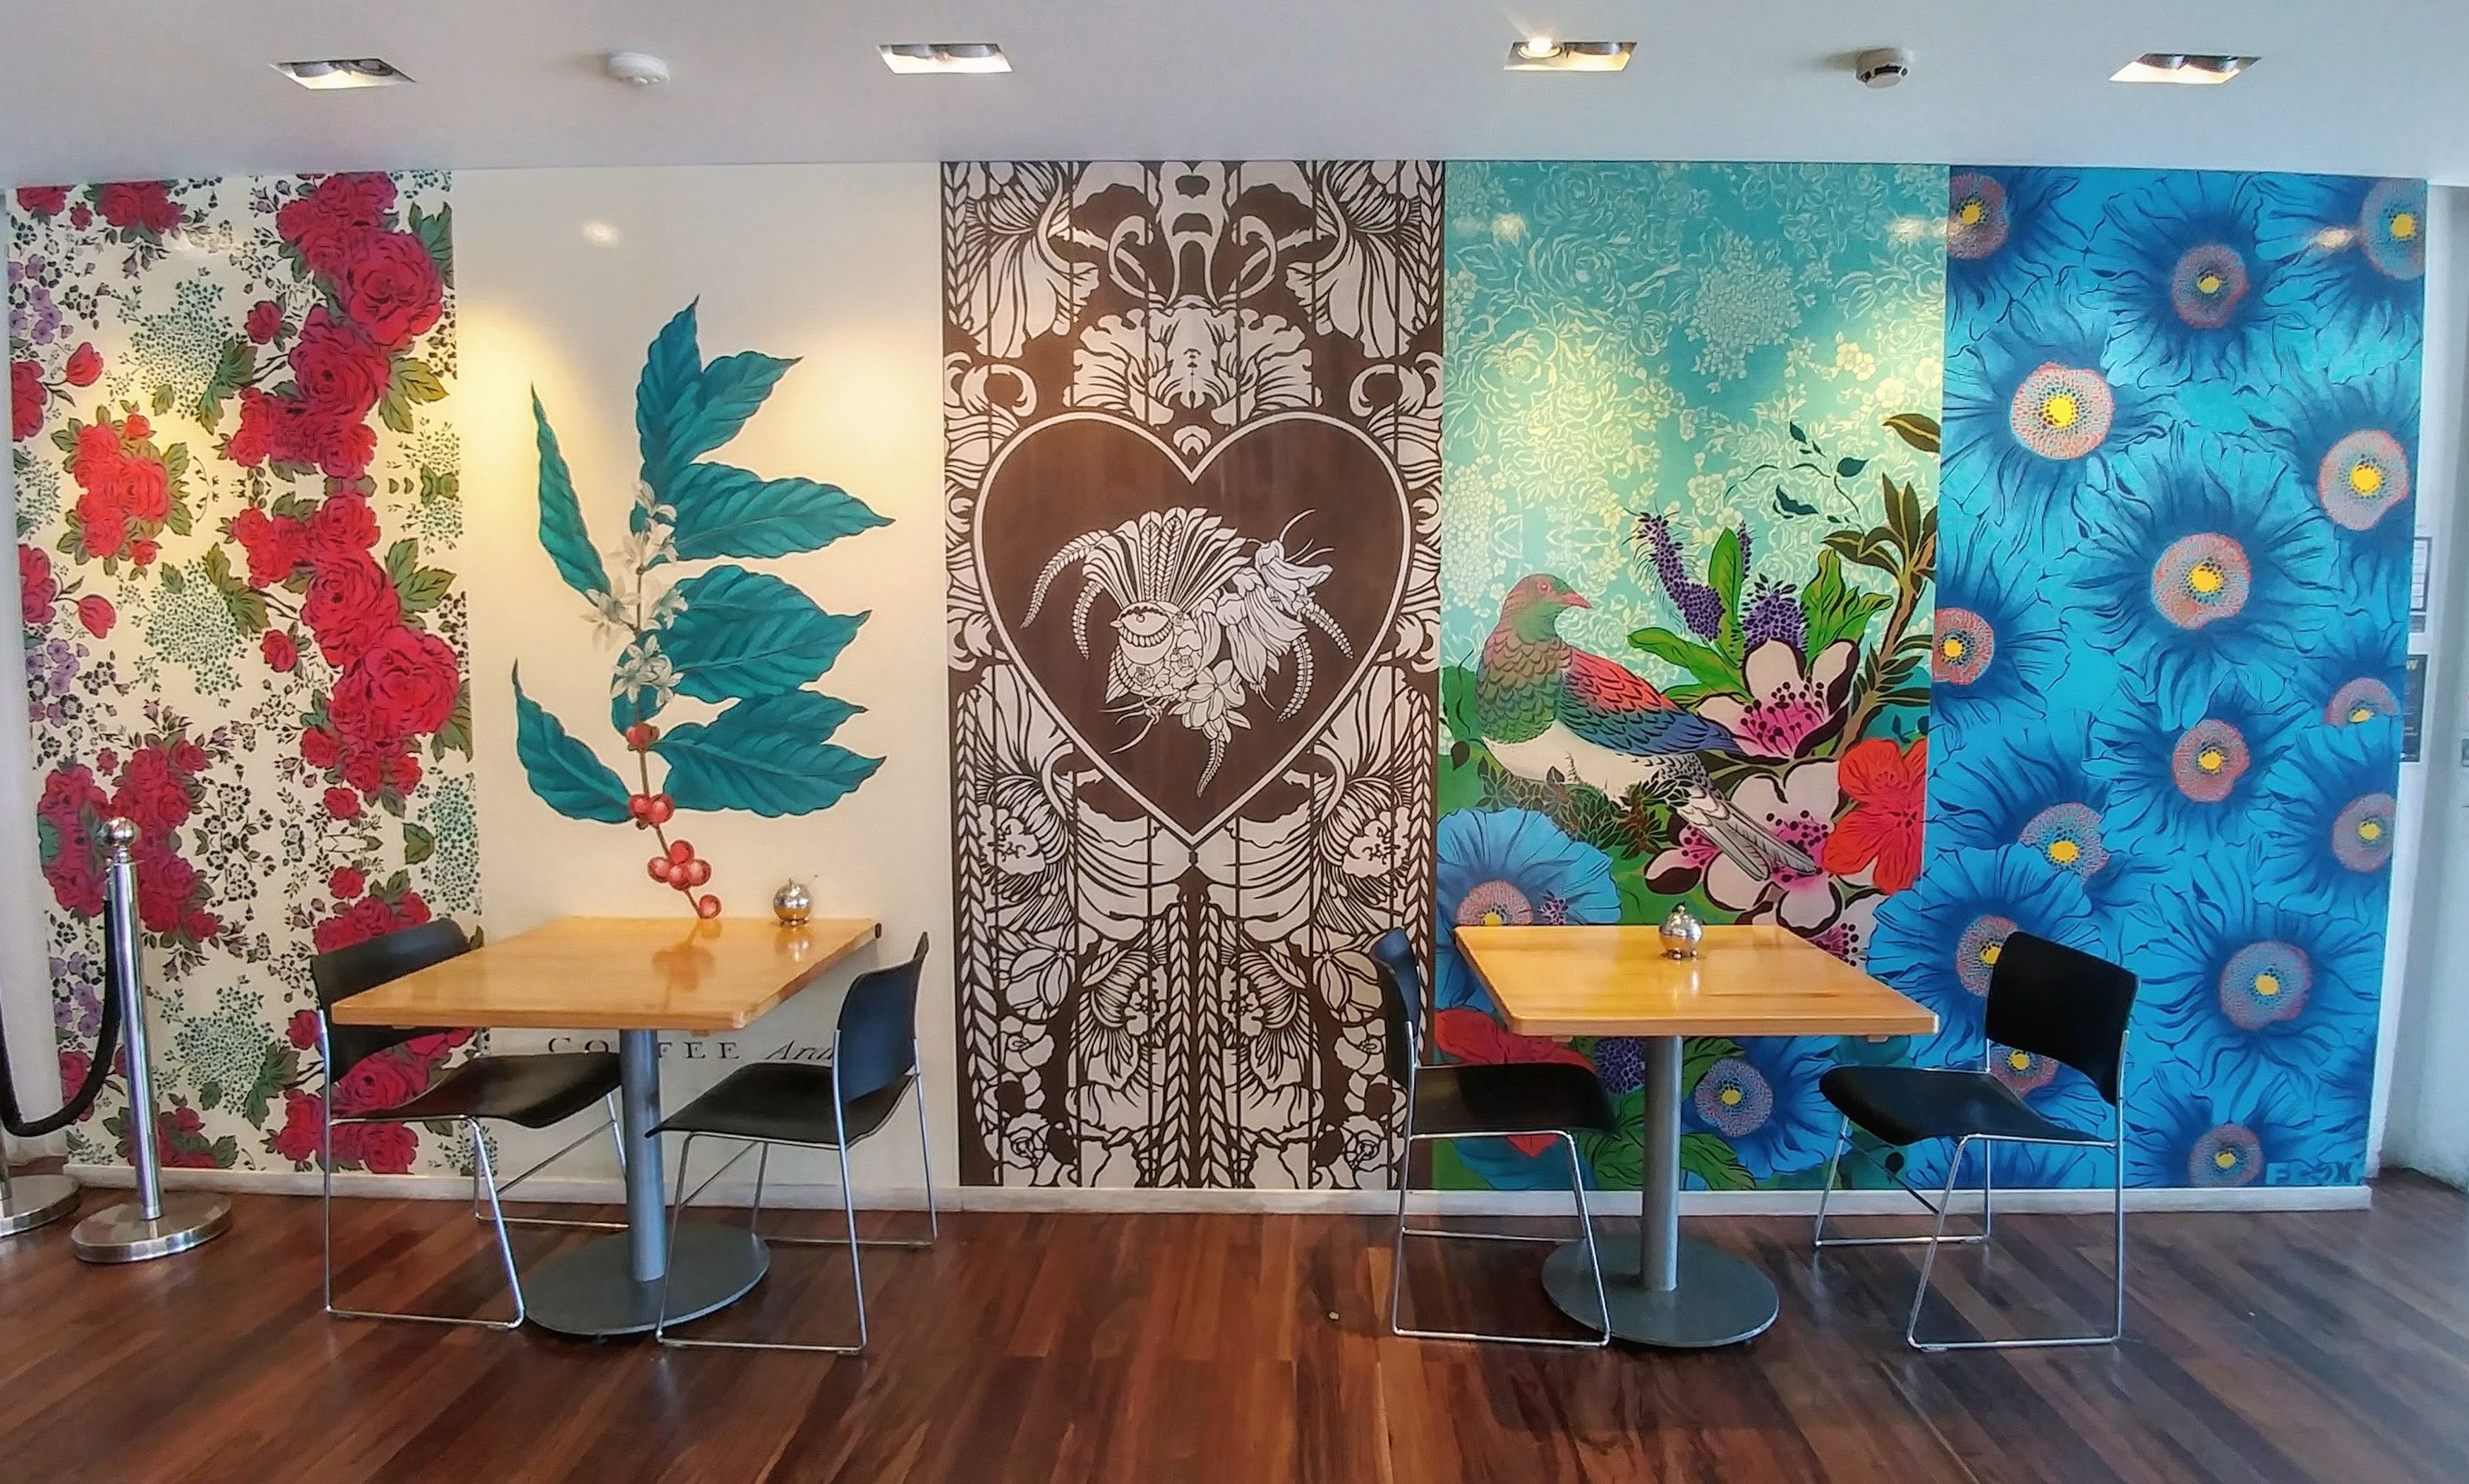 The most common decorating style we've seen around Auckland are murals. This one is in Tartine Café.